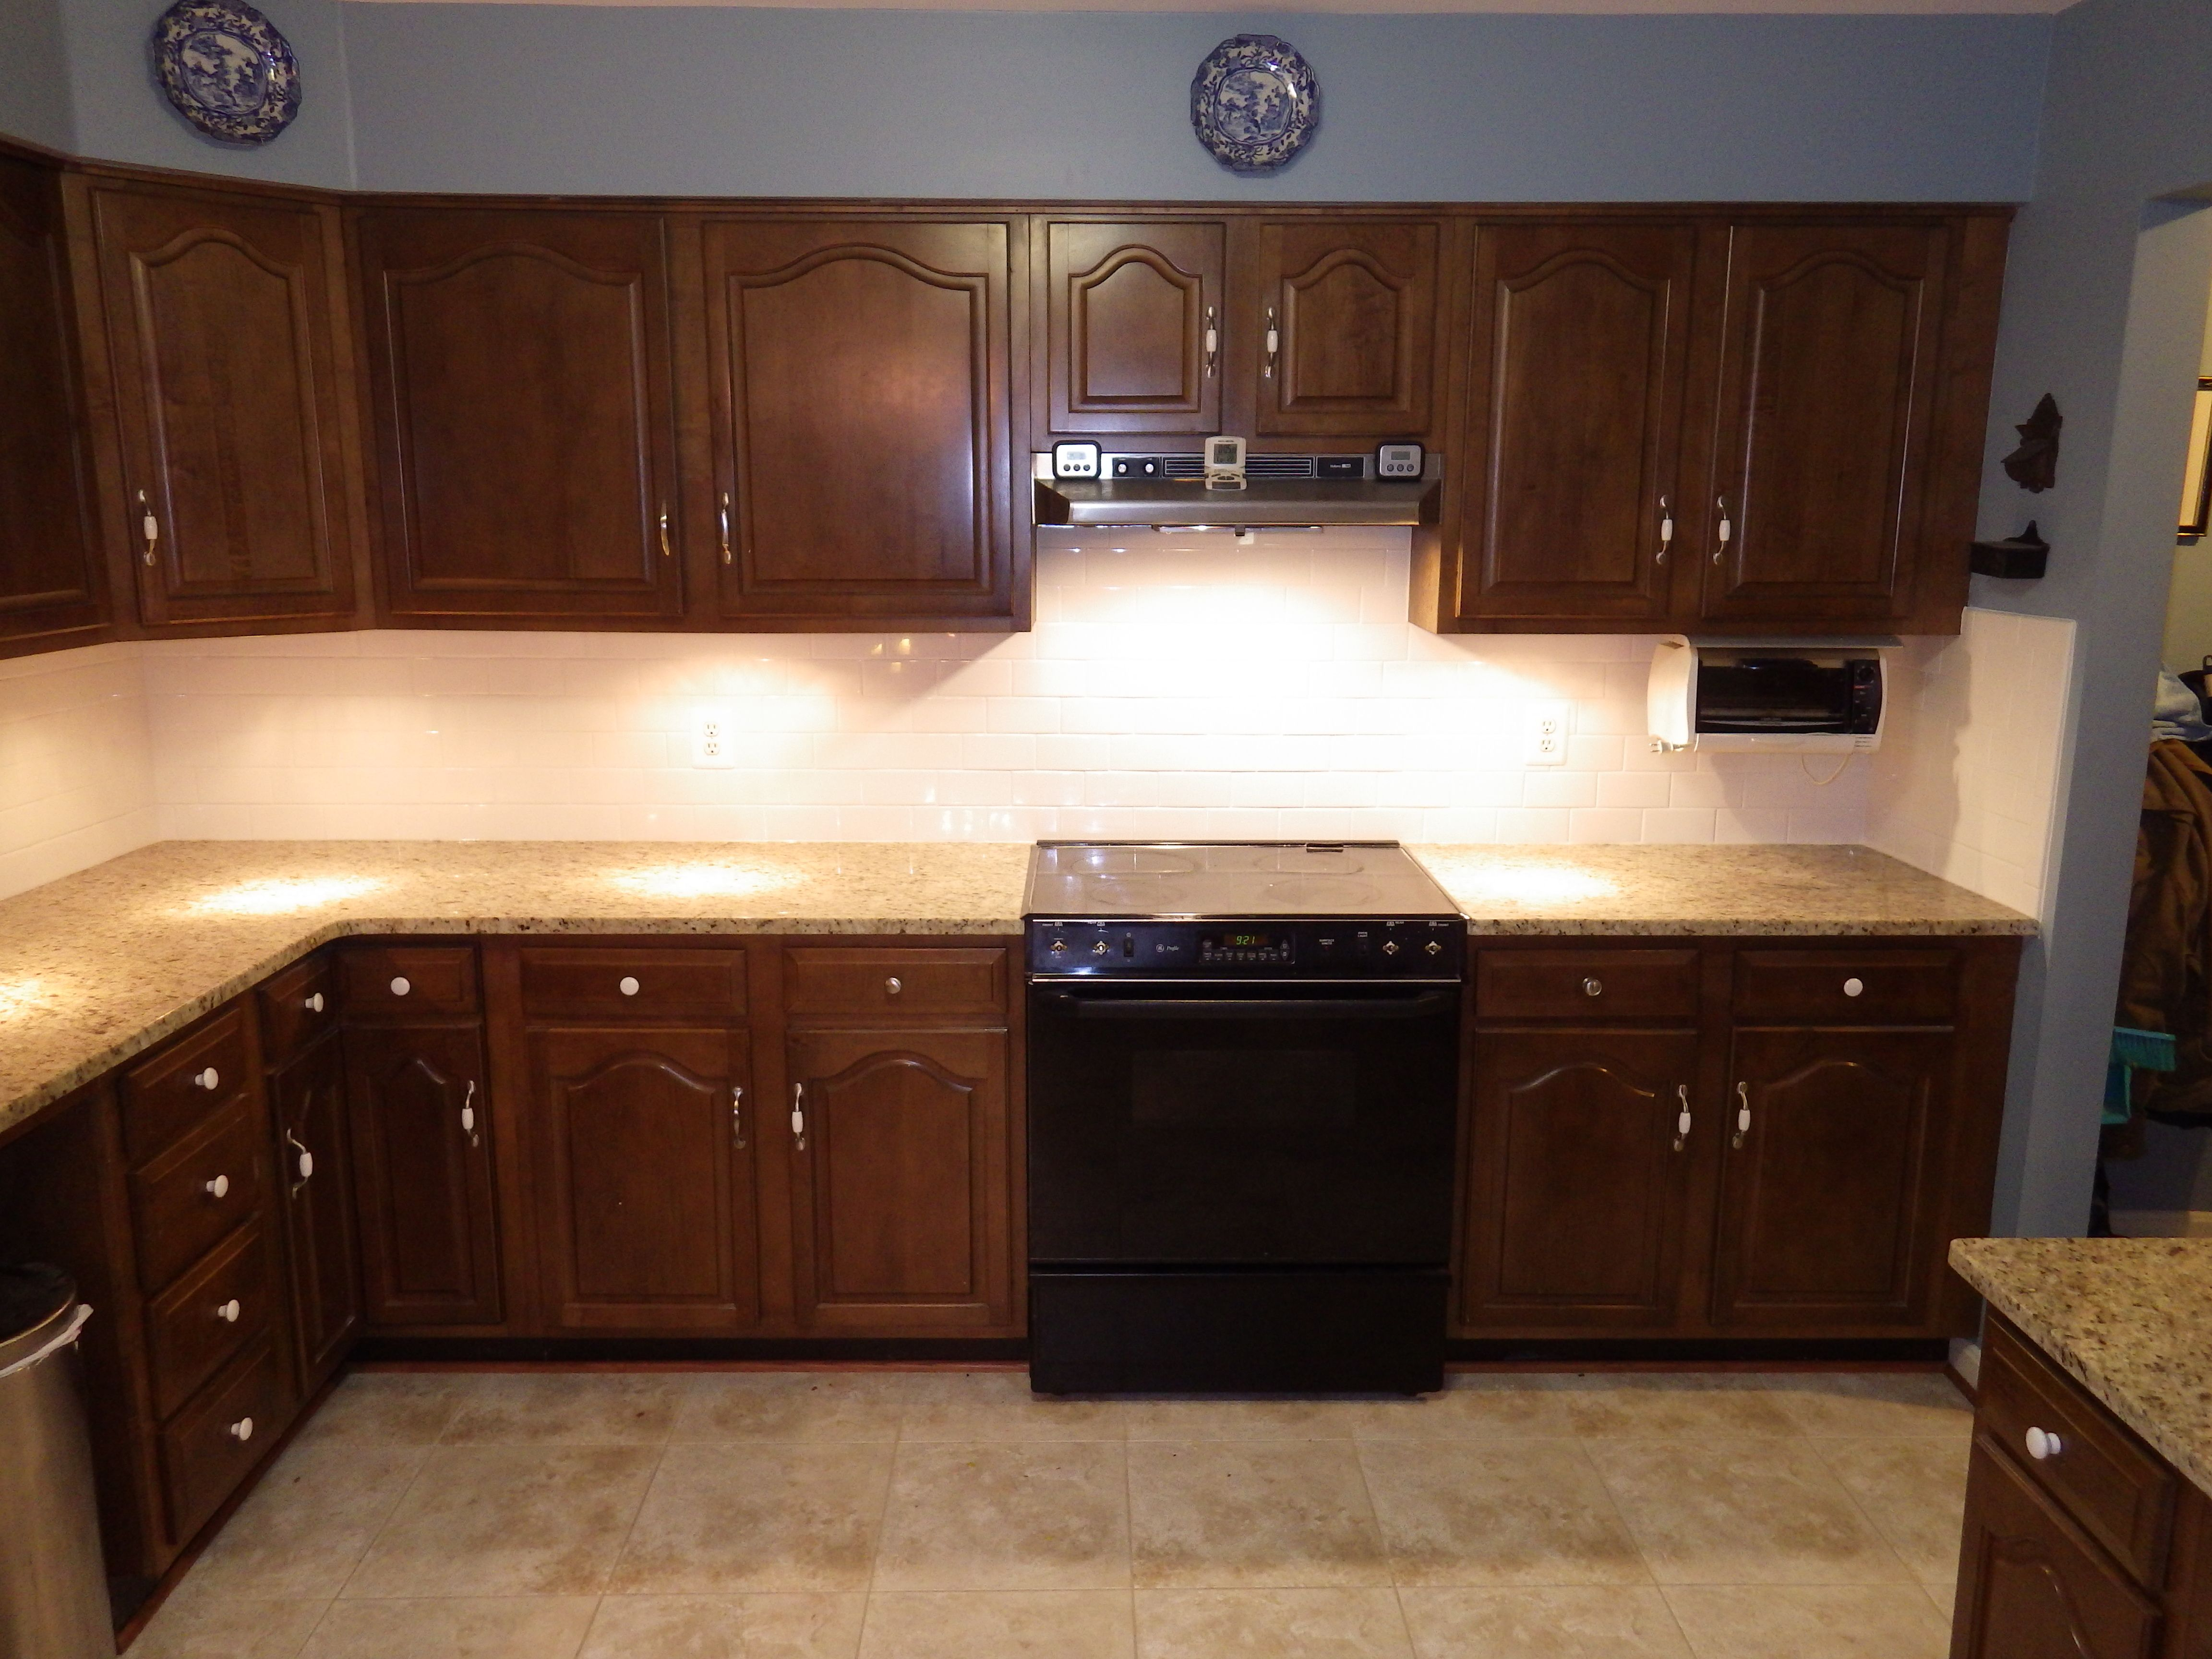 Best The After My Beautiful Blue And White Kitchen The Dark 640 x 480